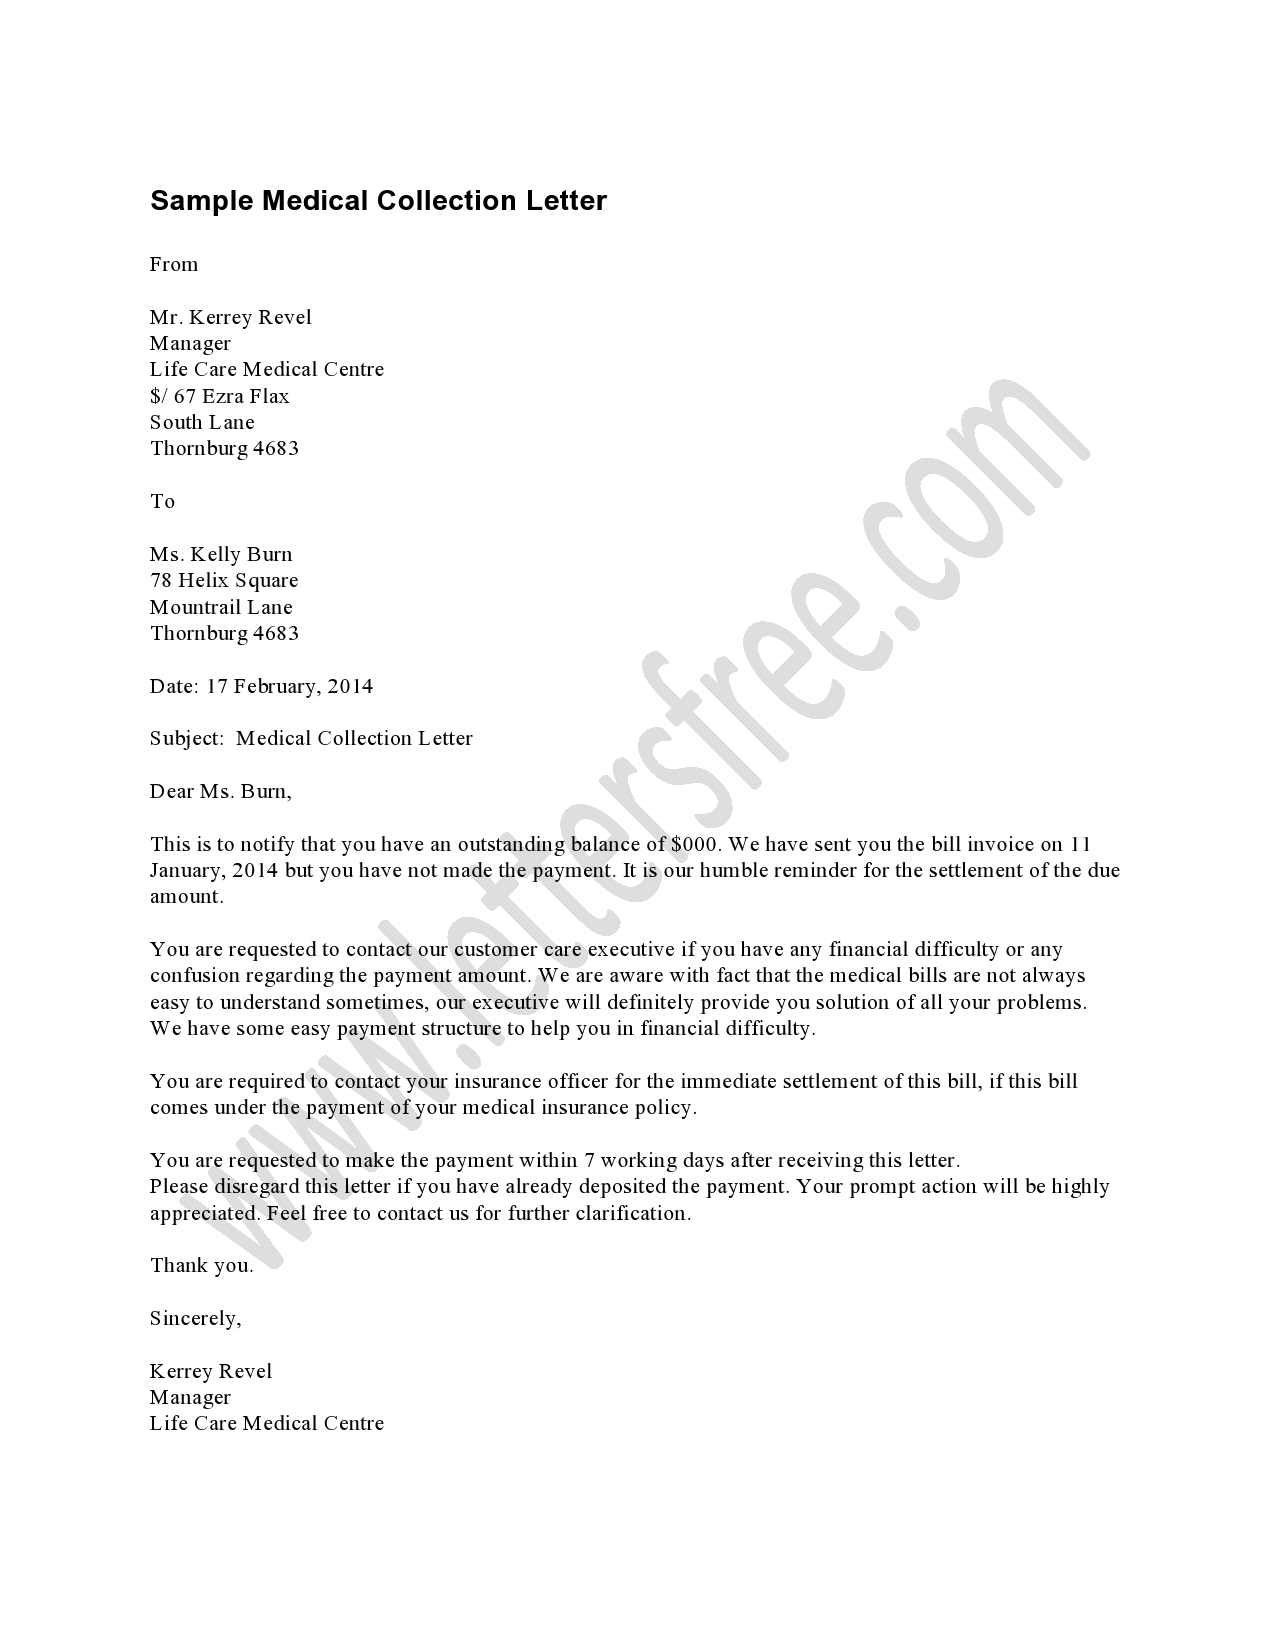 Hipaa Letter Medical Collection Template Collection